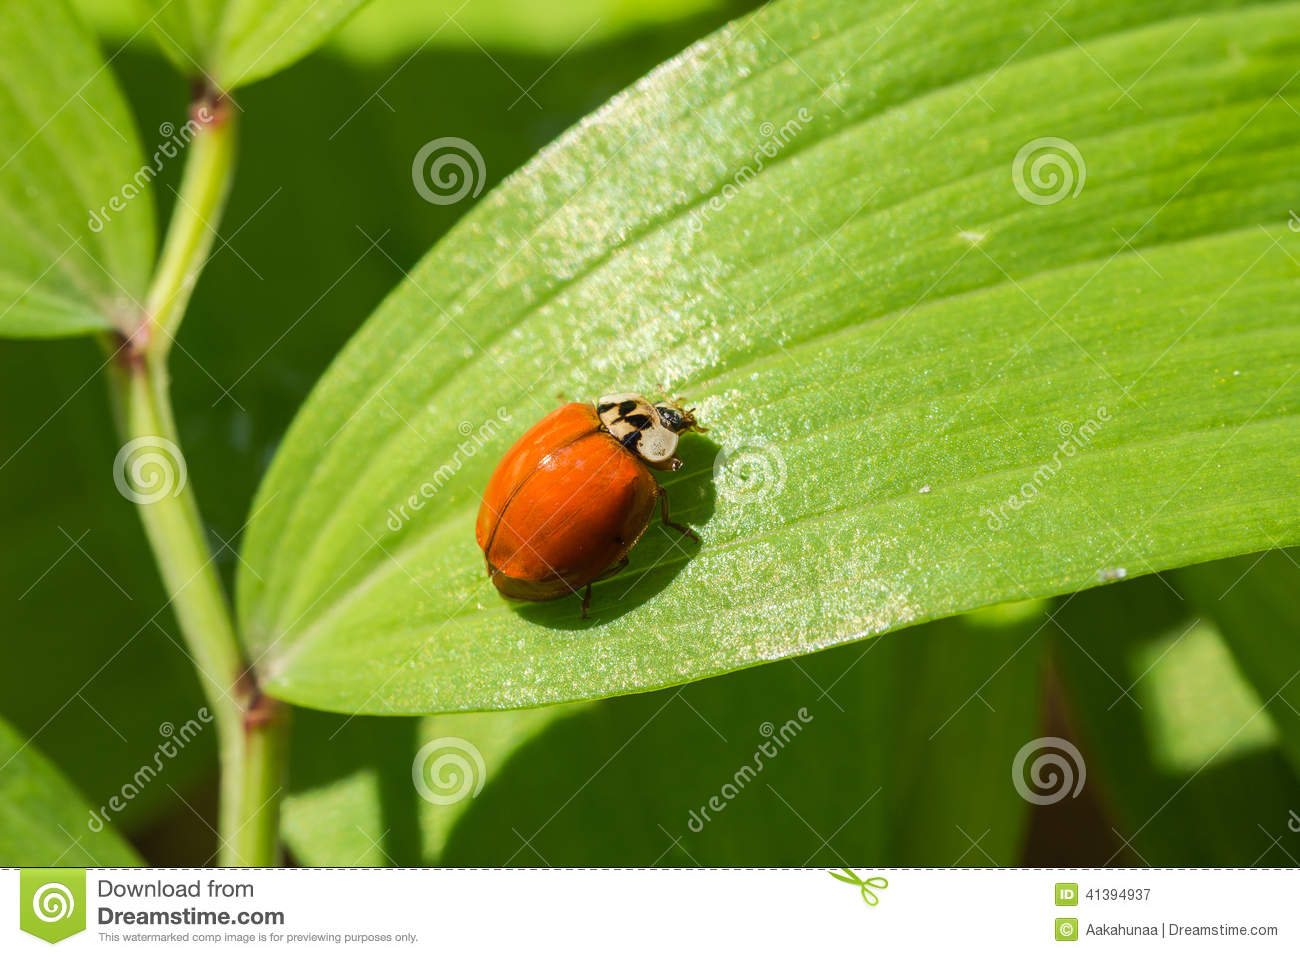 Finding Some Spots Of Bright Color At >> The Beetles Stock Image Image Of Outdoor Natural Ecology 41394937